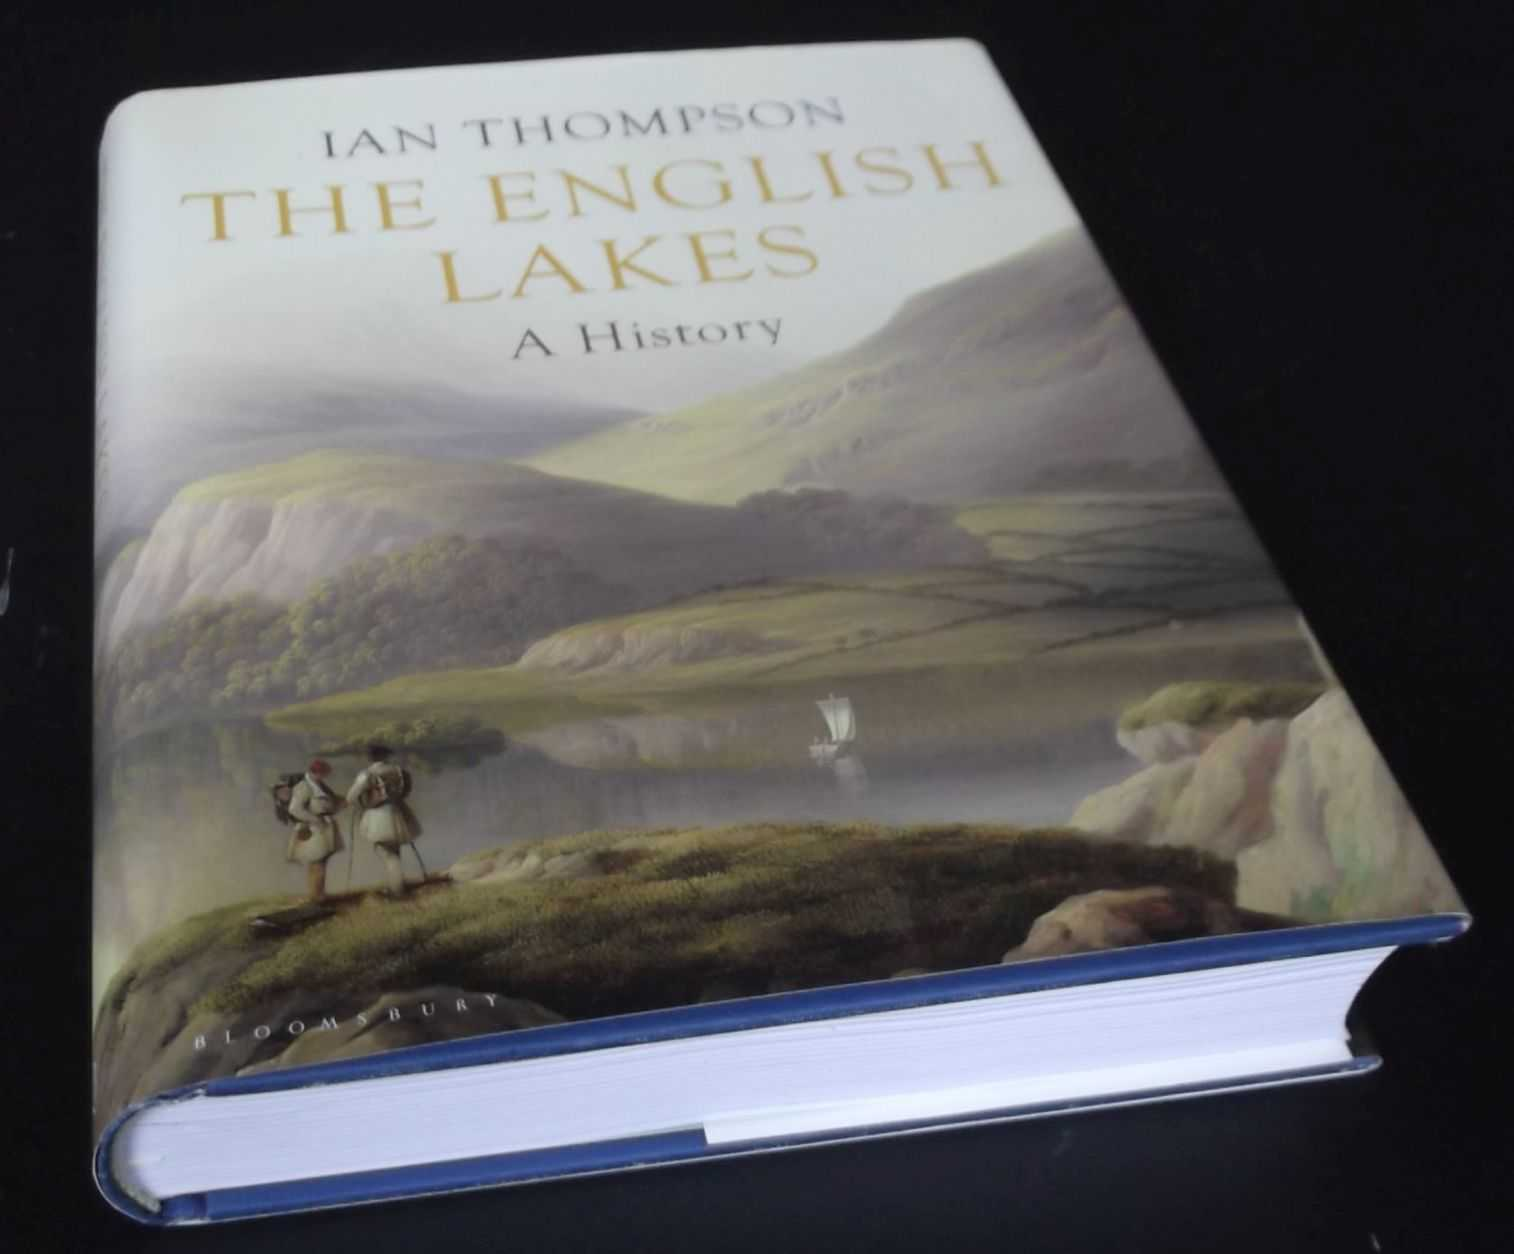 IAN THOMPSON - The English Lakes: A History